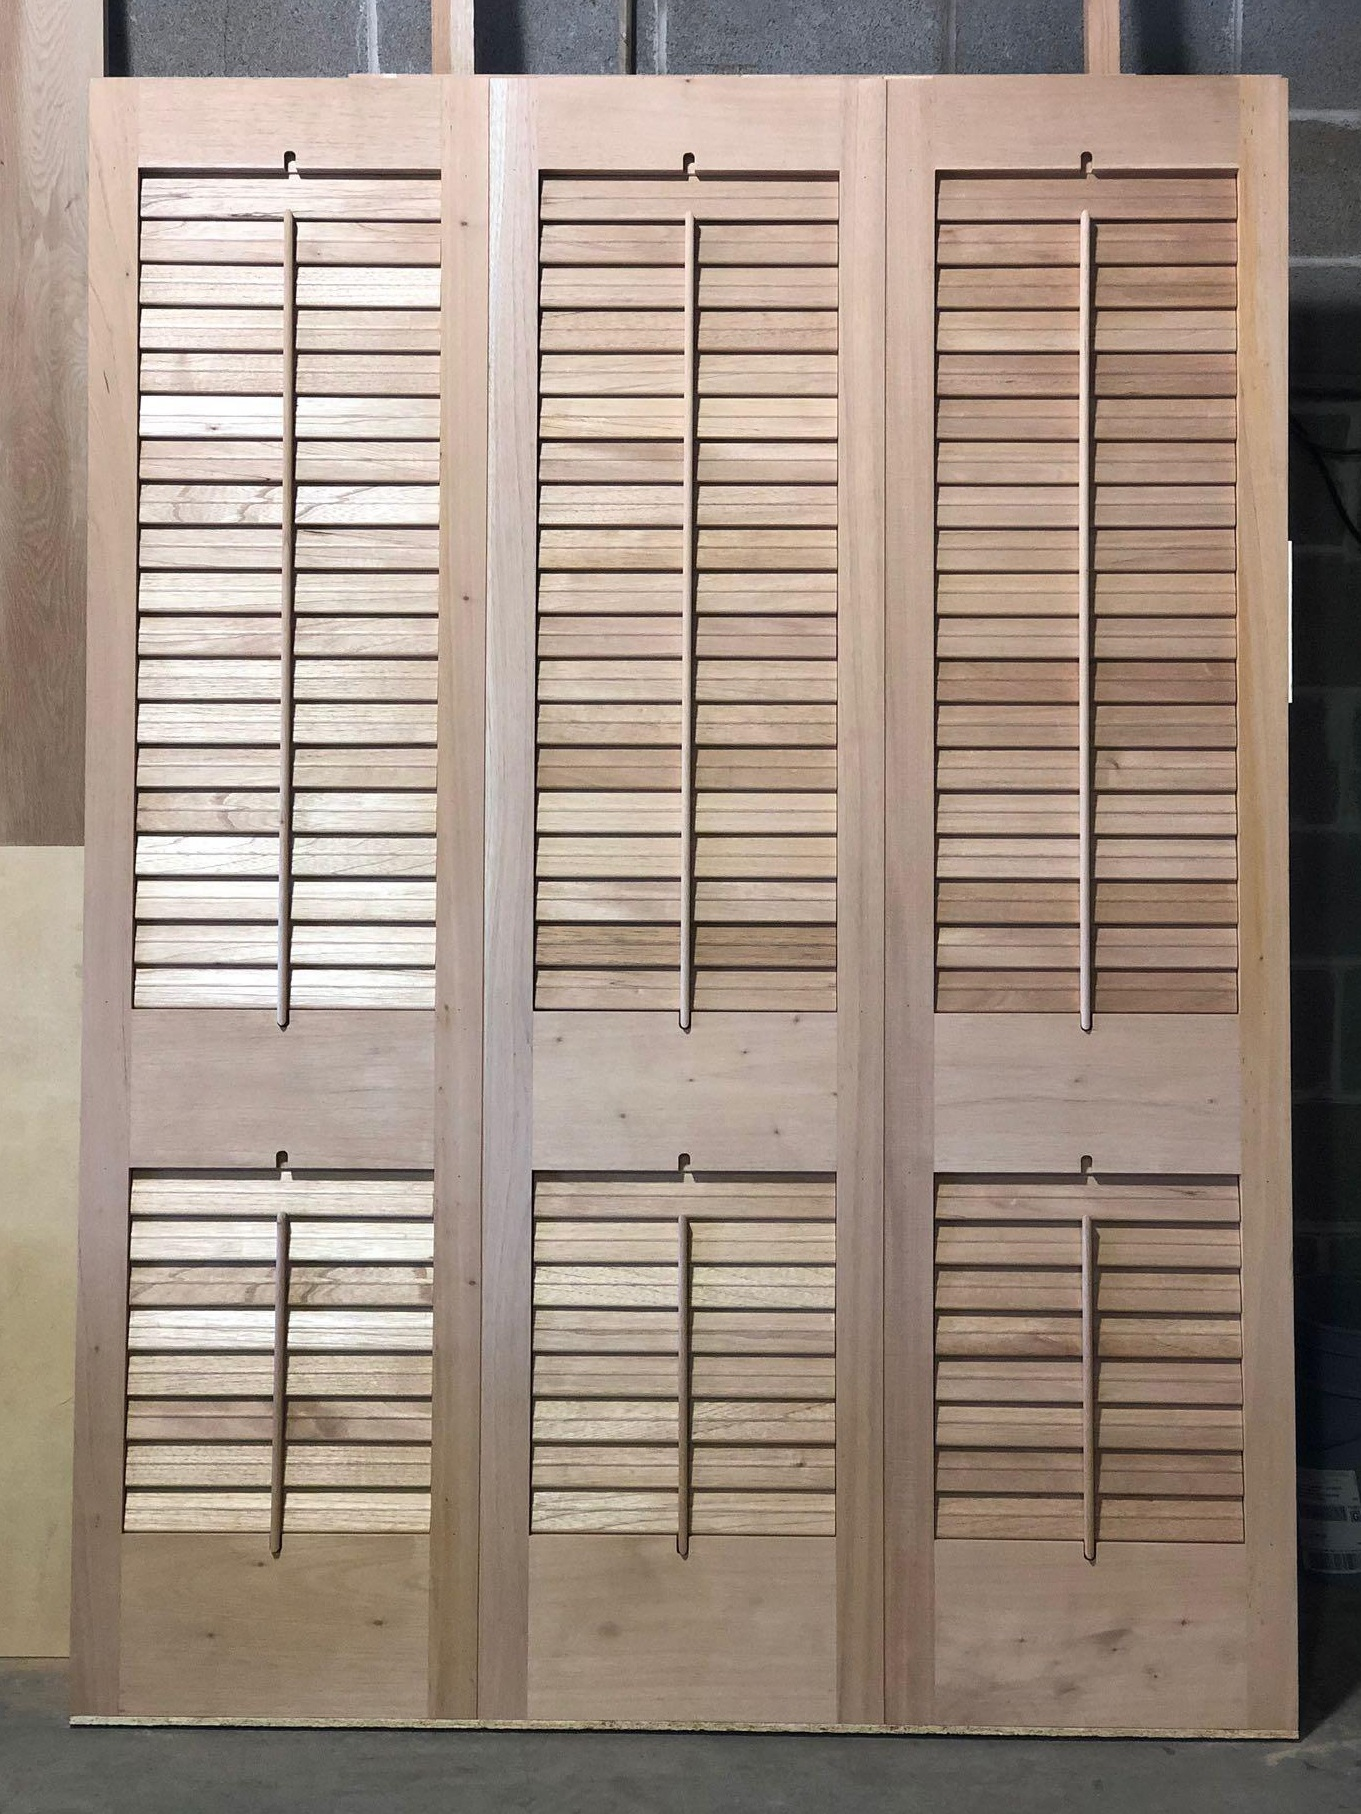 Shutters - - Custom Interior- Custom Exterior- Operable & Fixed- Impact-Rated-Board & Batten-Louvered Shutters-Bermuda Shutters